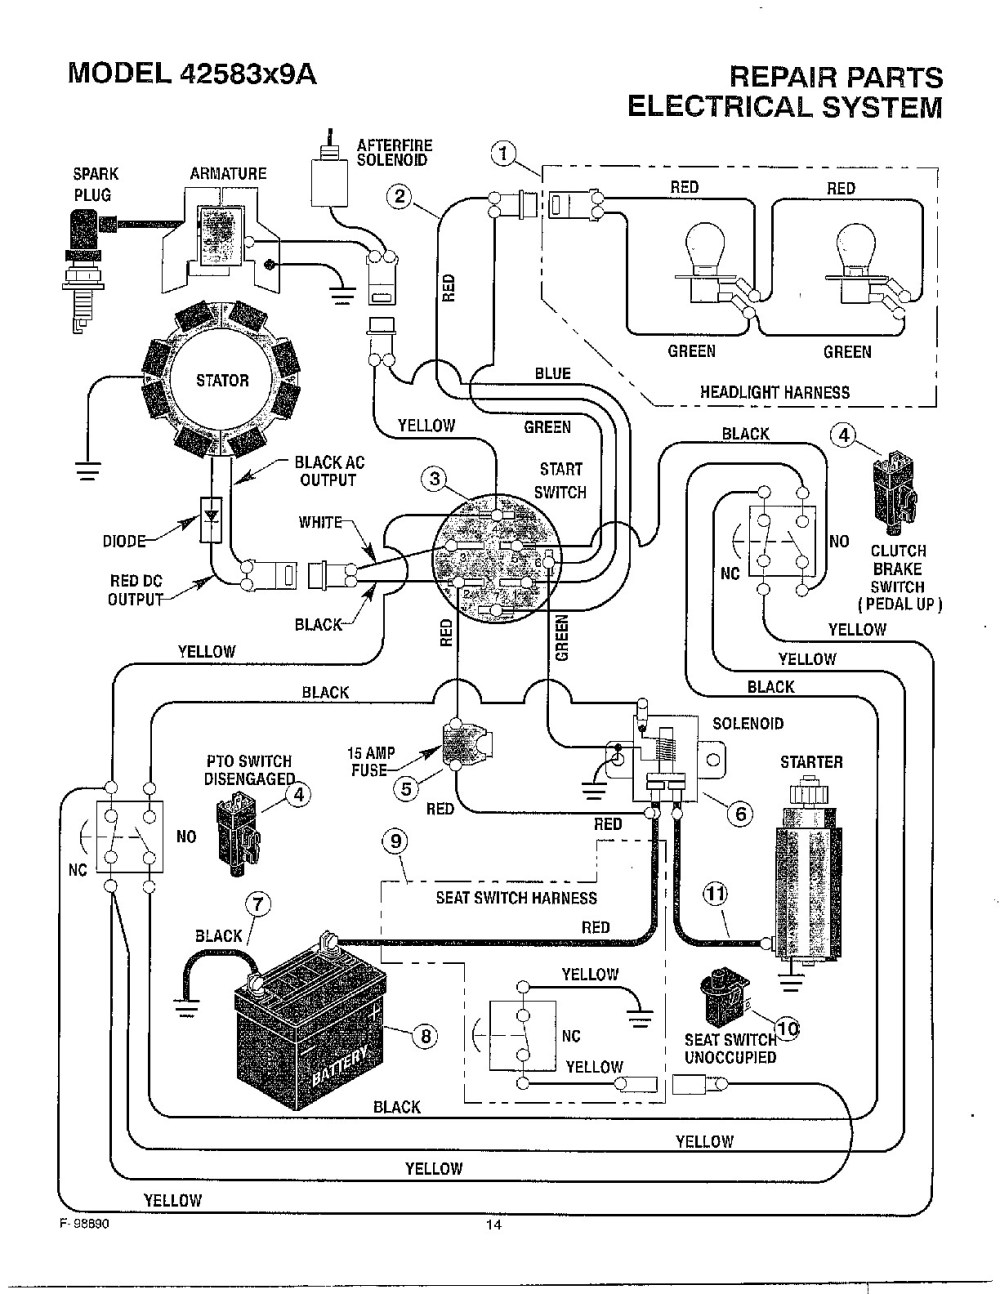 medium resolution of briggs and stratton key switch wiring diagram free picture experts rh evilcloud co uk briggs and